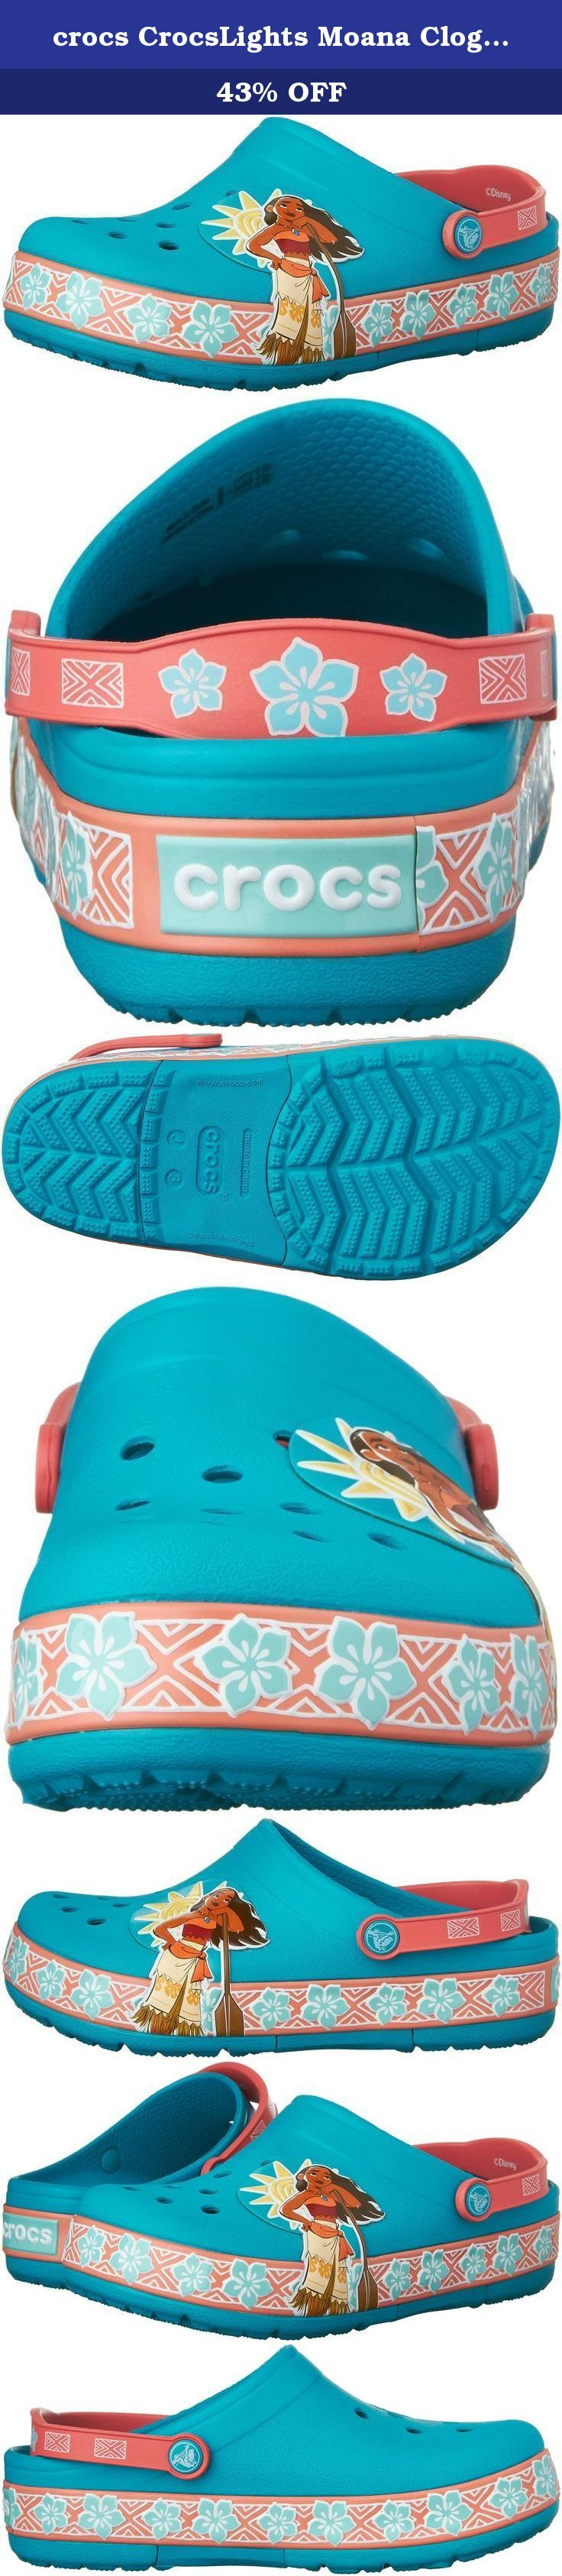 af567a13d5e17d crocs CrocsLights Moana Clog (Toddler Little Kid)